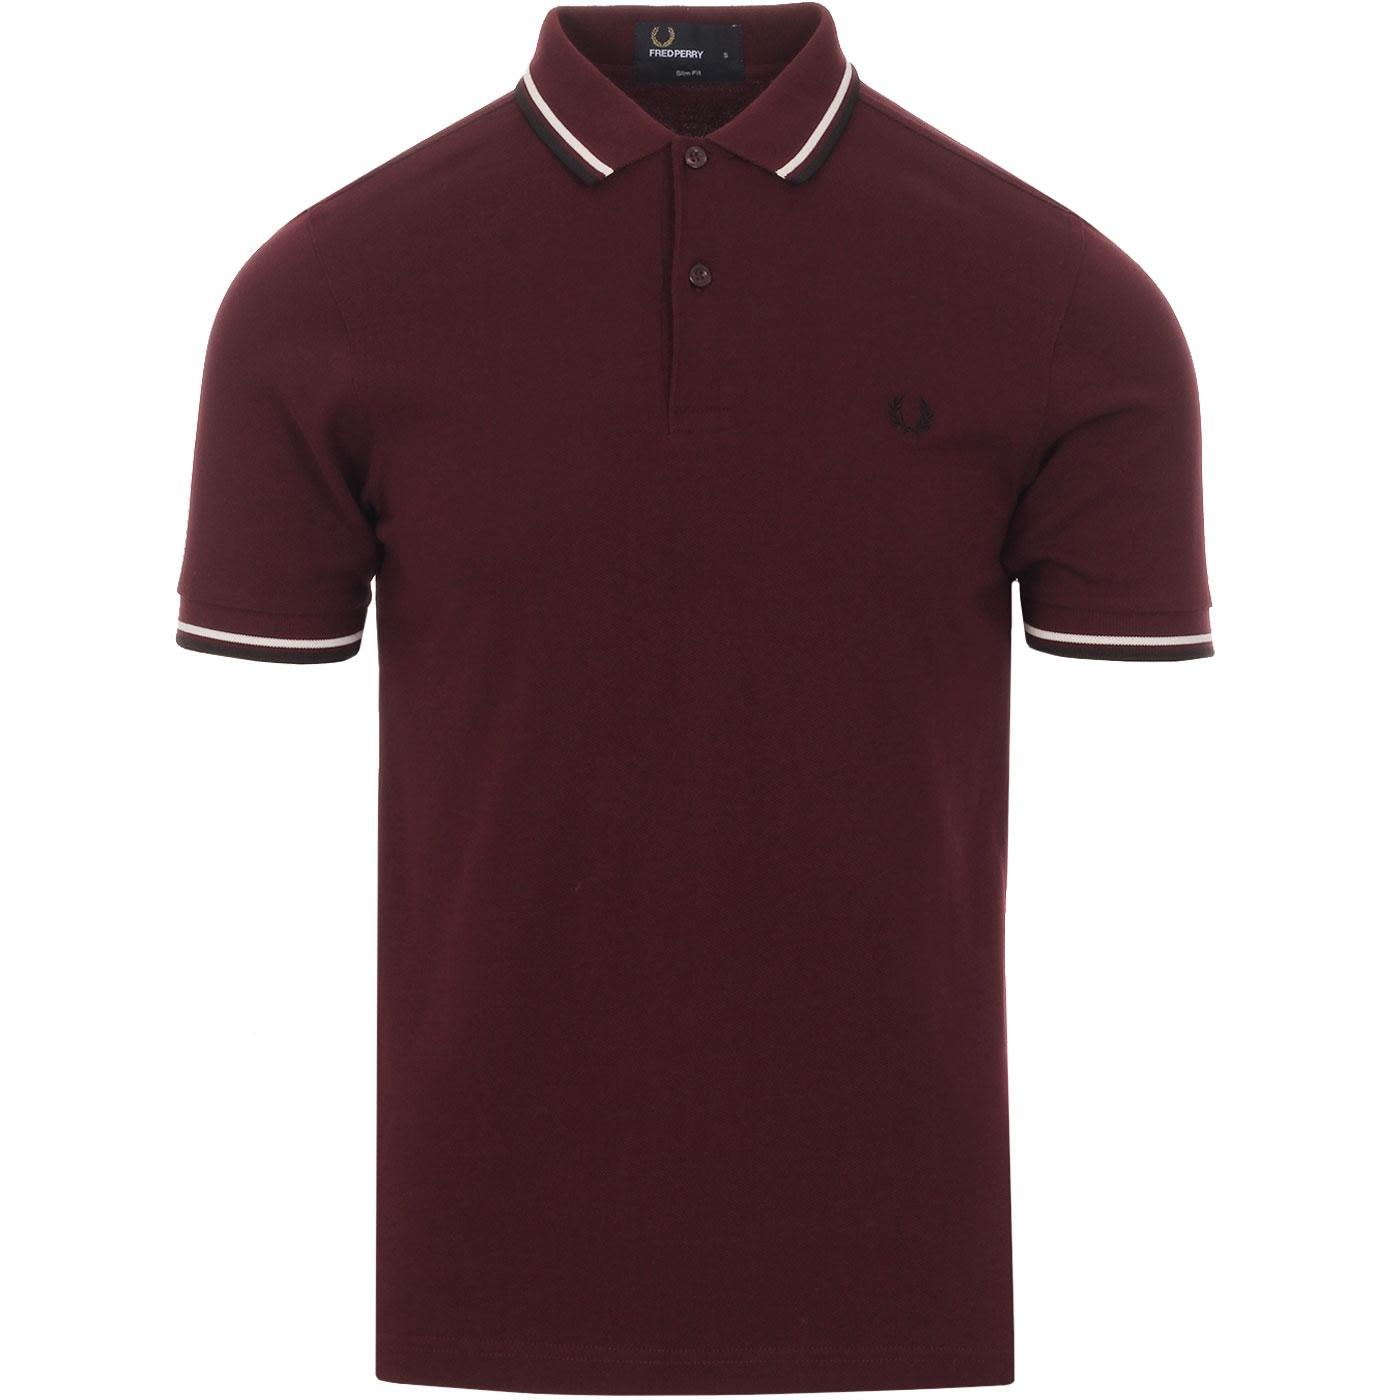 FRED PERRY M3600 Men's Mod Twin Tipped Polo Top M